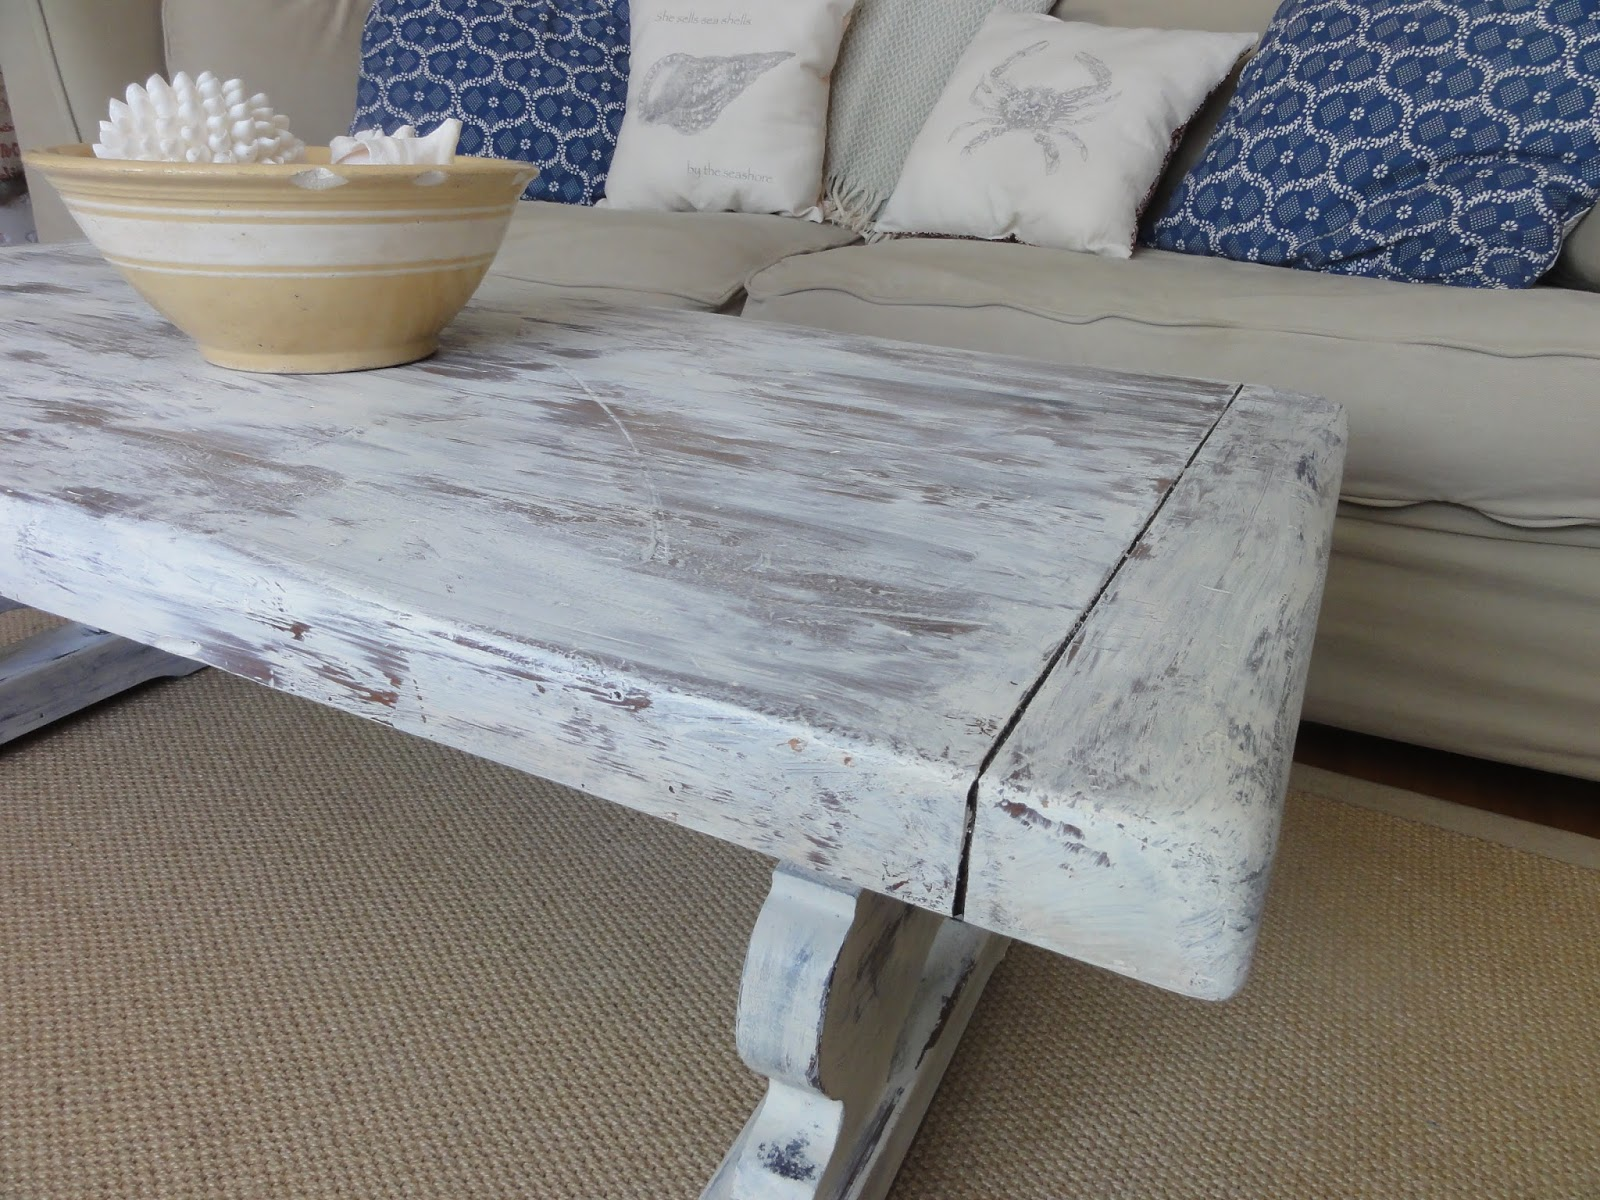 Melville Coffee Table Before & After Finding Silver Pennies